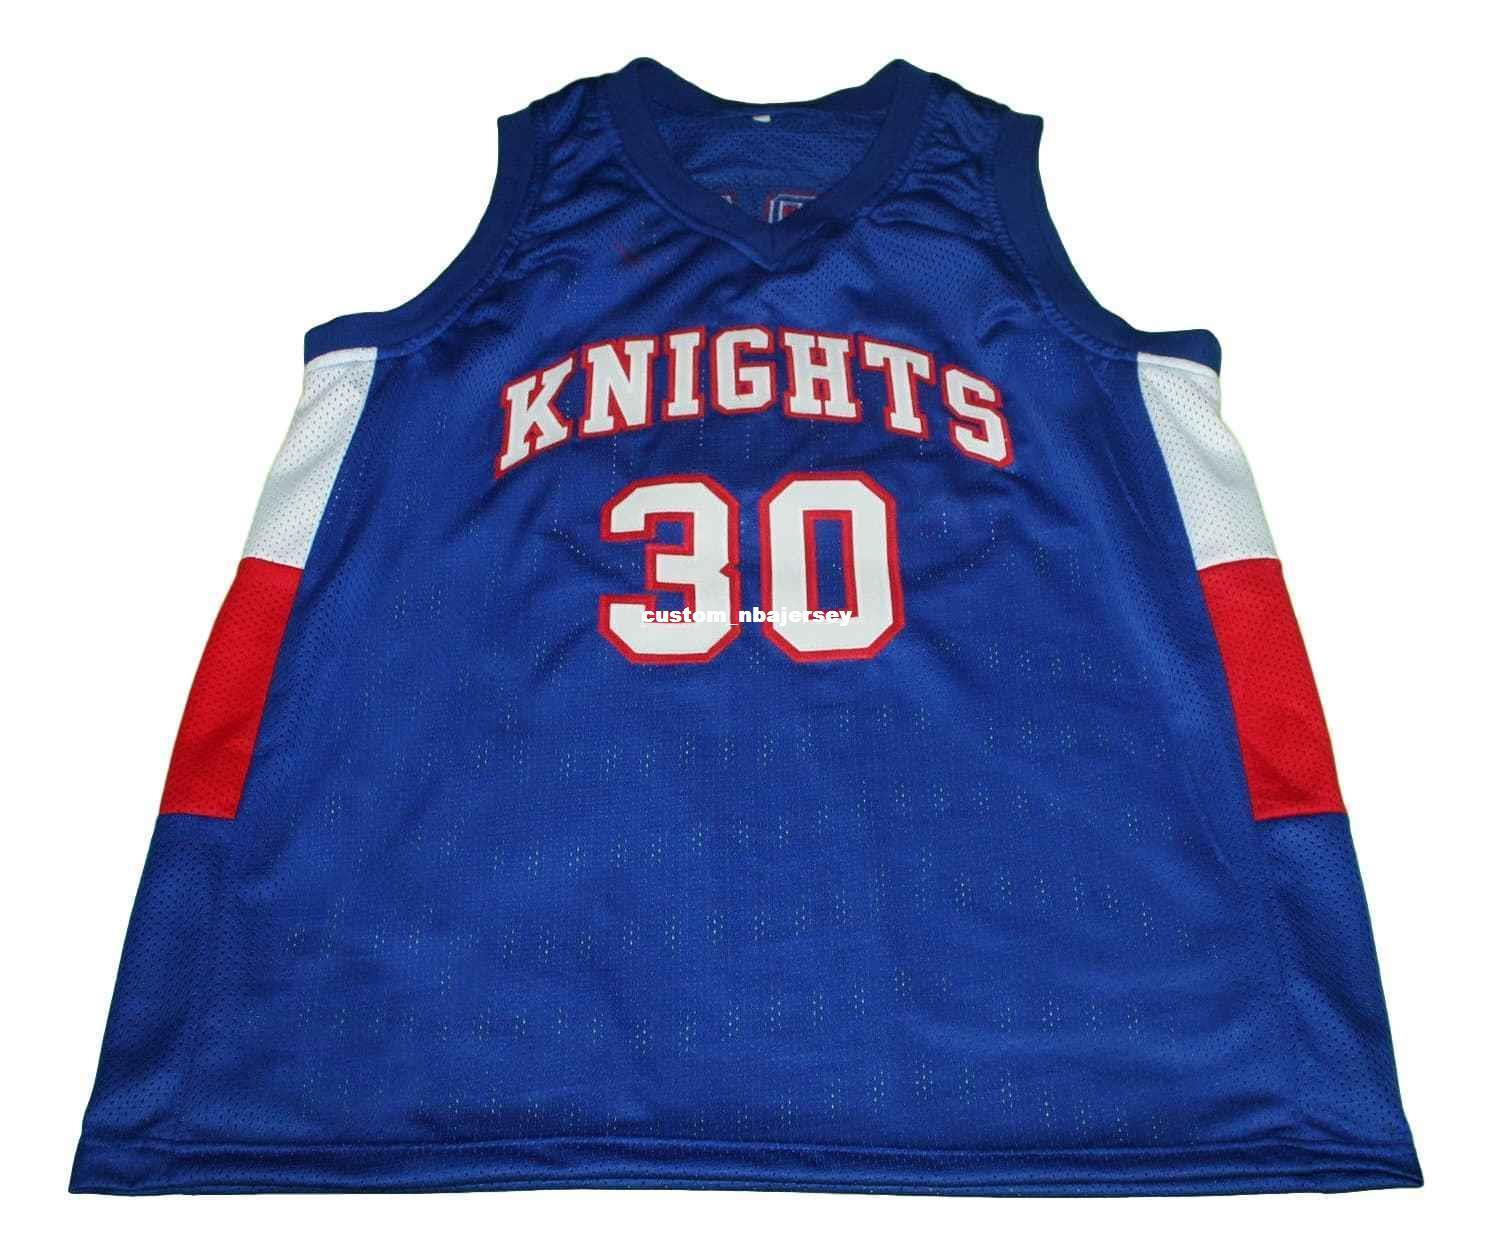 b5b004961 2019 Wholesale Stephen Curry 30 Knights High School New Basketball Jersey  Blue Stitched Custom Any Number Name MEN WOMEN YOUTH BASKETBALL JERSEYS  From ...